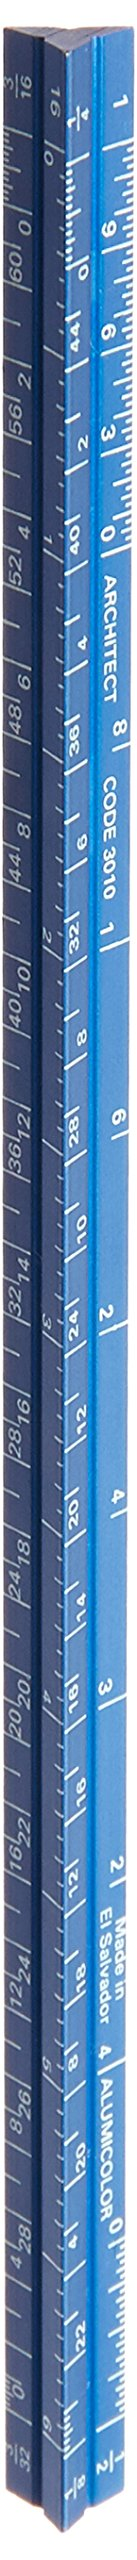 Alumicolor Pocket-Size Architect Scale, Aluminum, 6 inches, Blue (3010-5) by Alumicolor (Image #1)